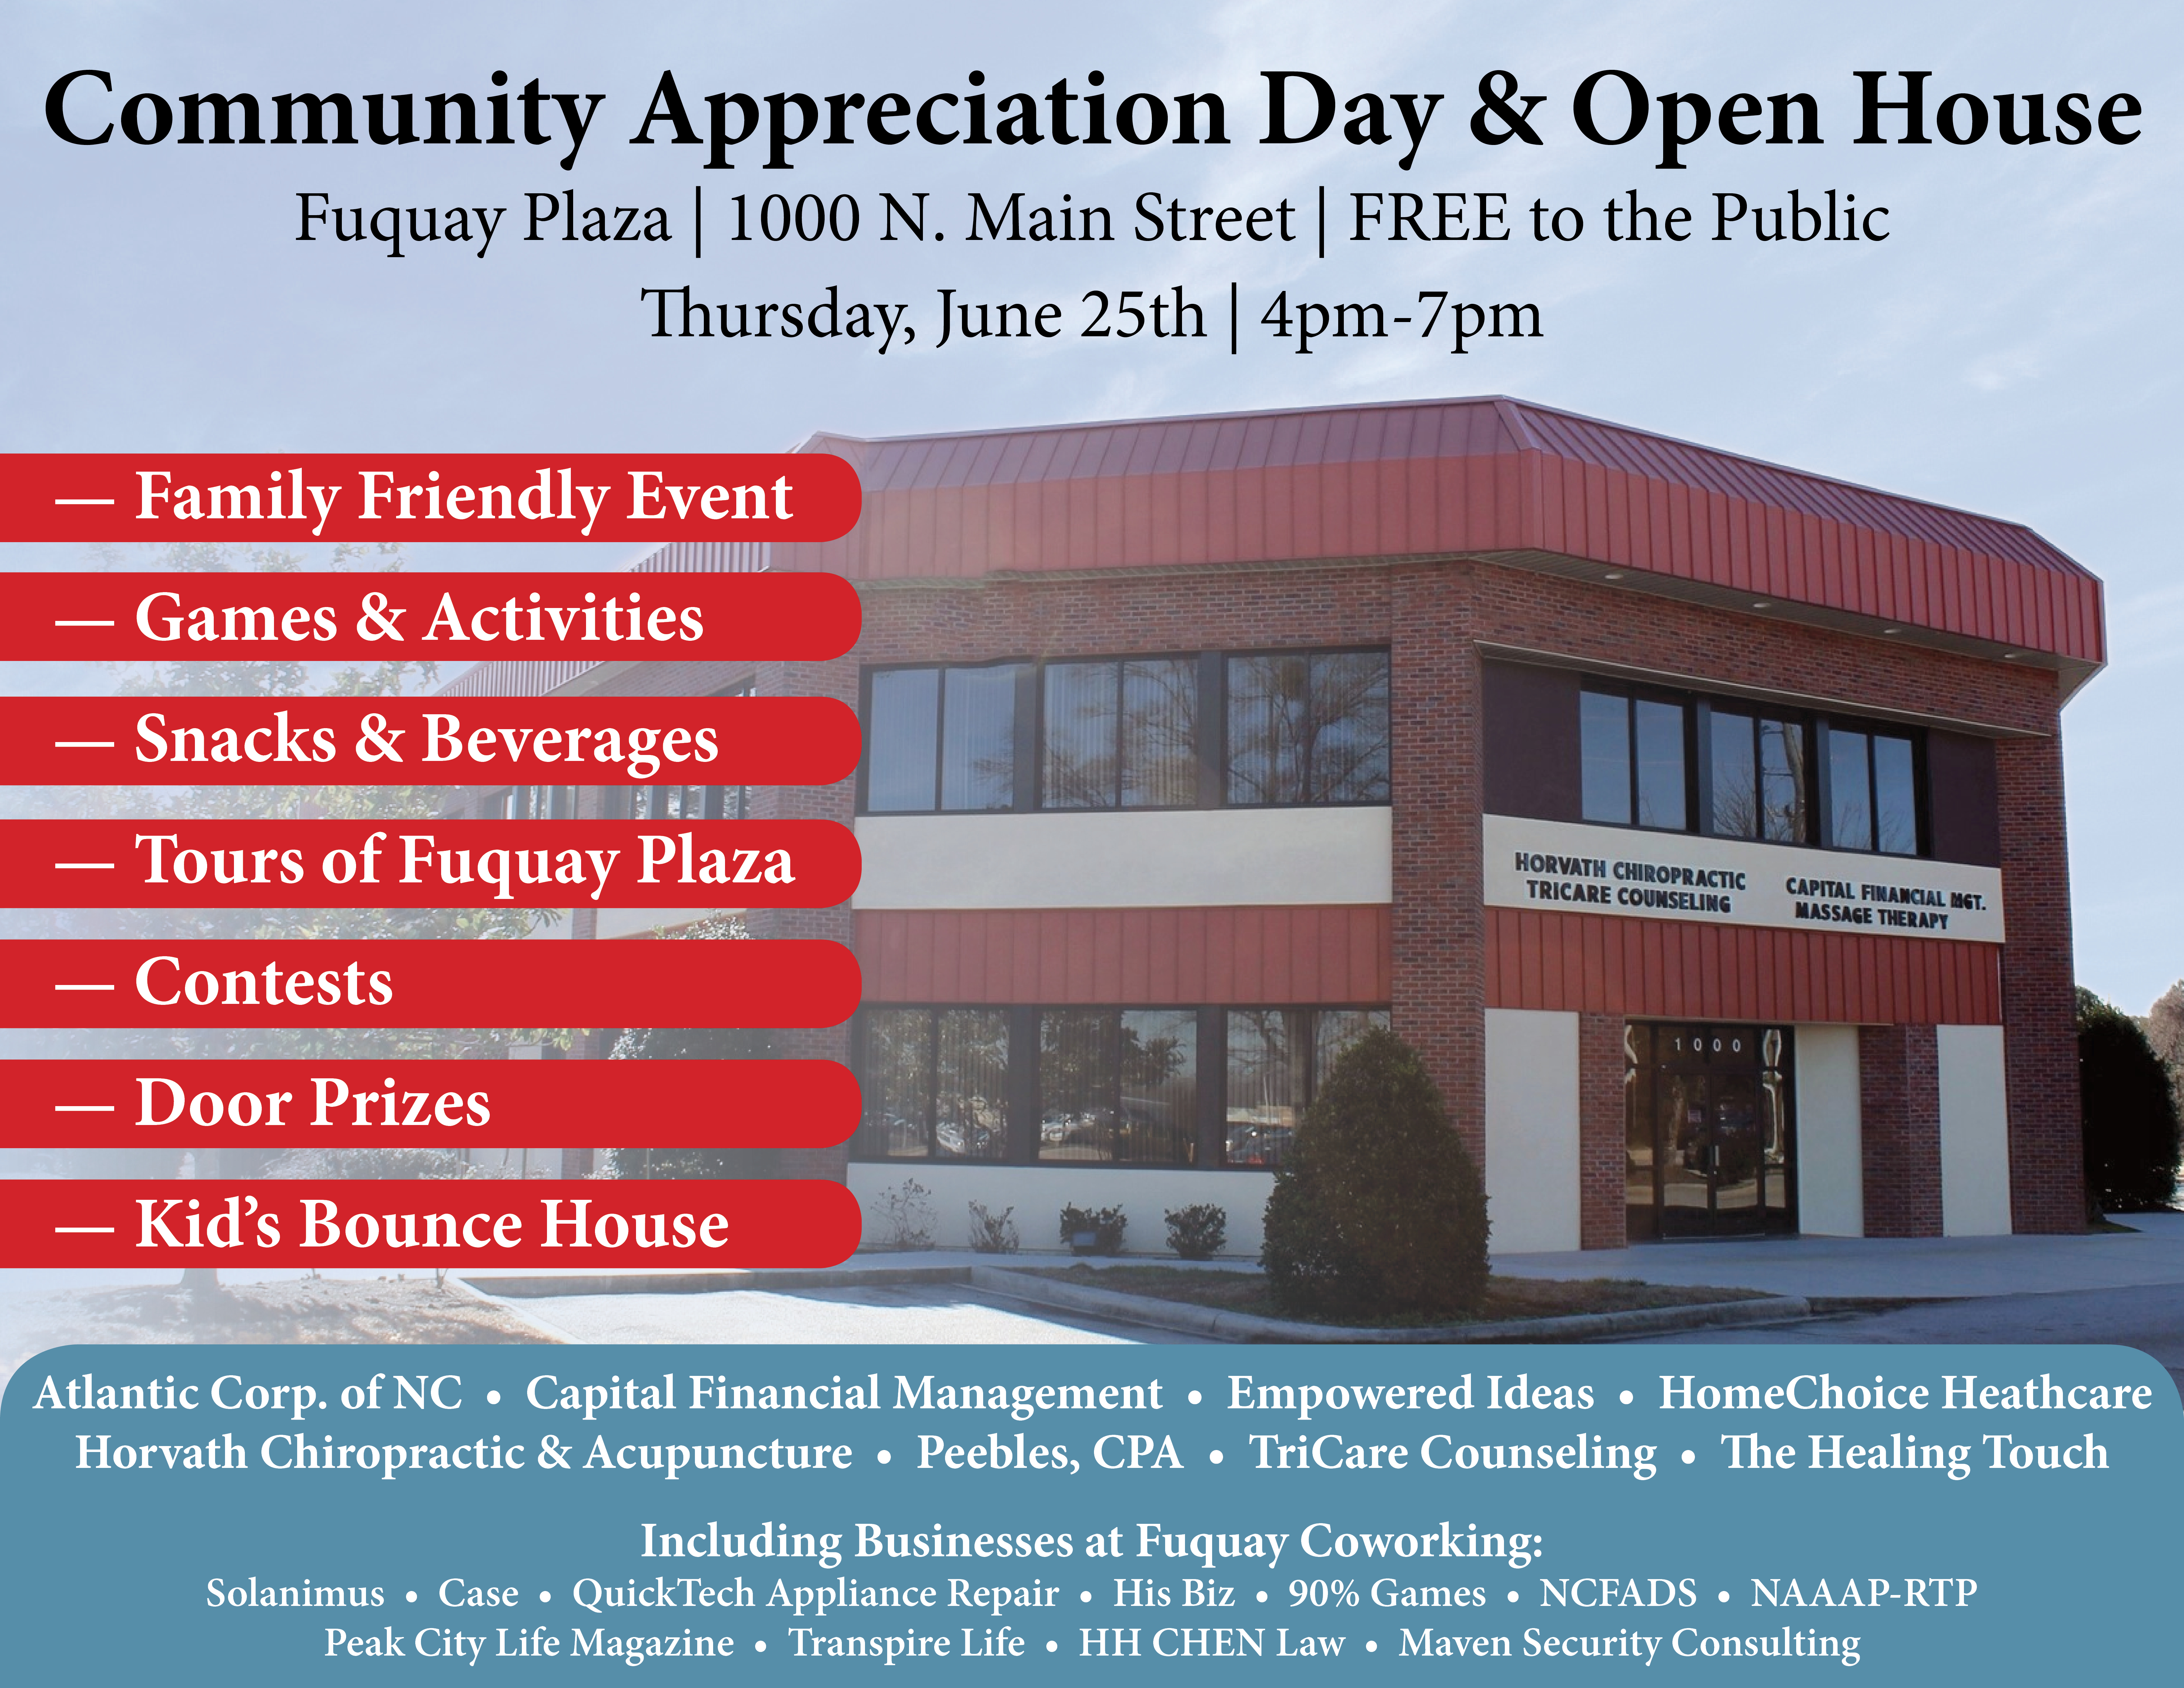 Fuquay Coworking and Fuquay Plaza 2015 Open House on June 25